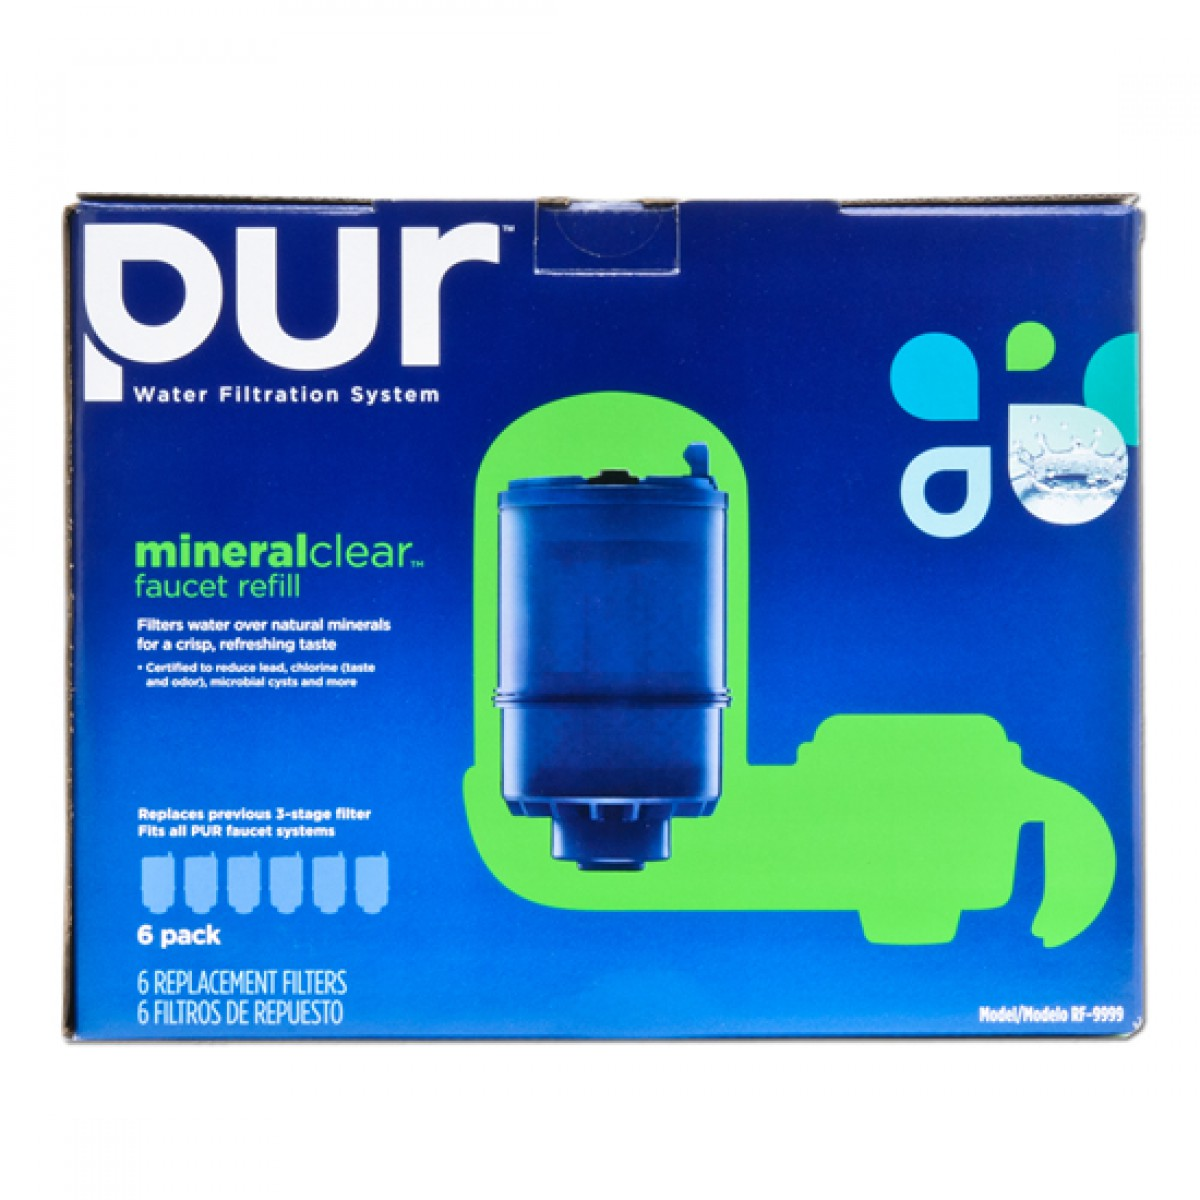 PUR RF-9999-6 3-Stage Mineral Clear Faucet Replacement Filters 6-Pack